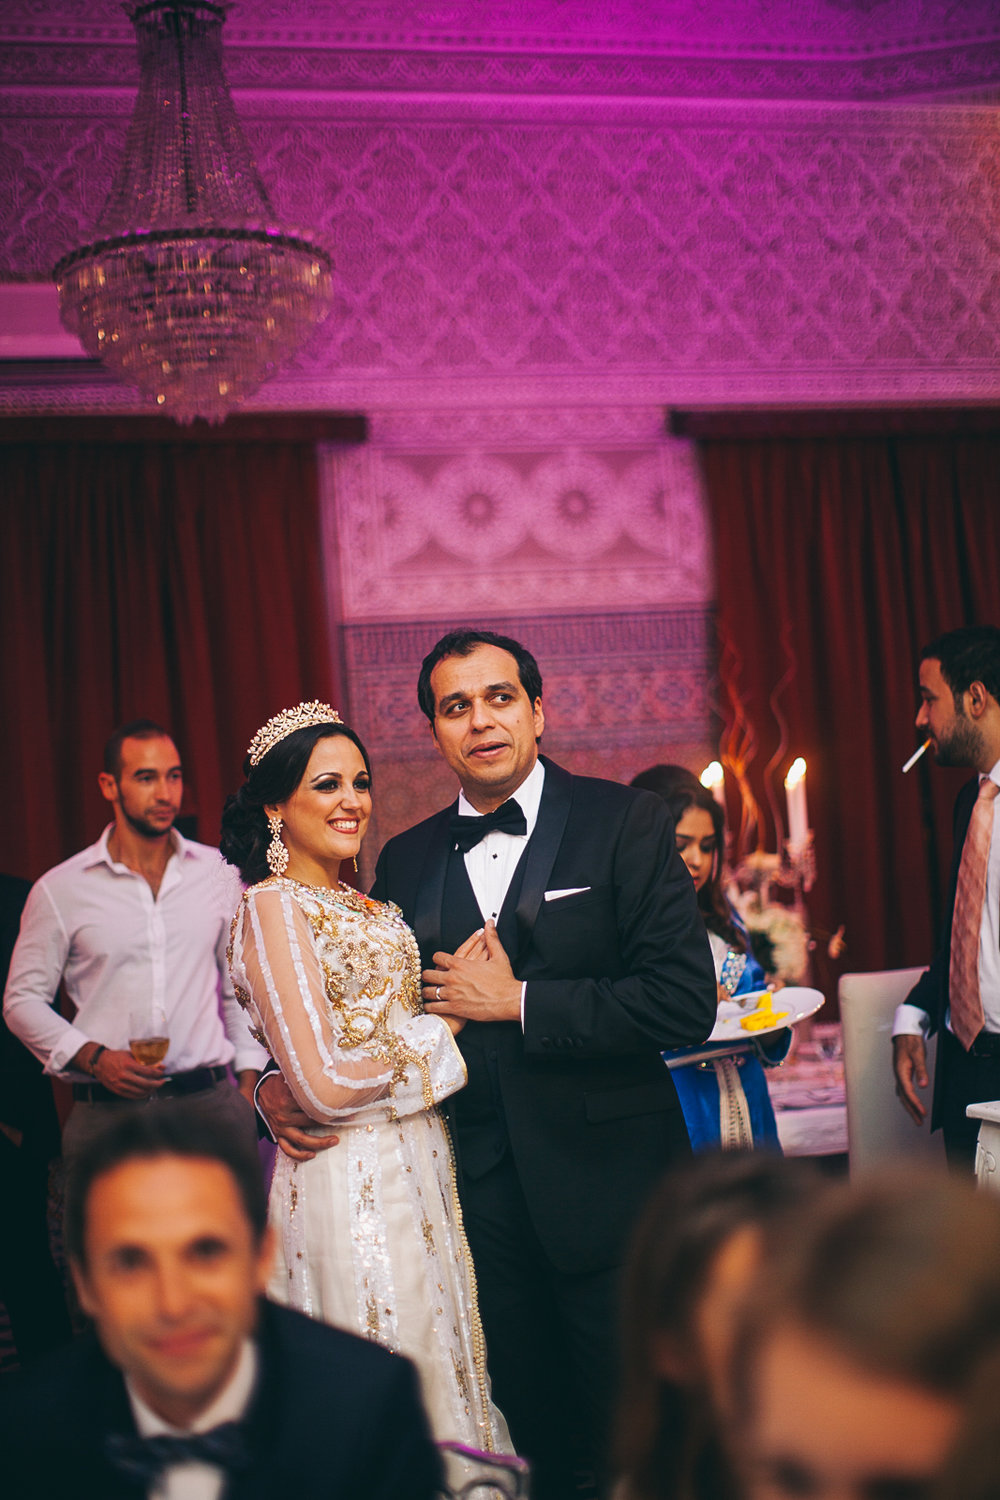 traditional_moroccan_wedding_photographry_casablanca_morocco_houda_vivek_ebony_siovhan_bokeh_photography_145.jpg